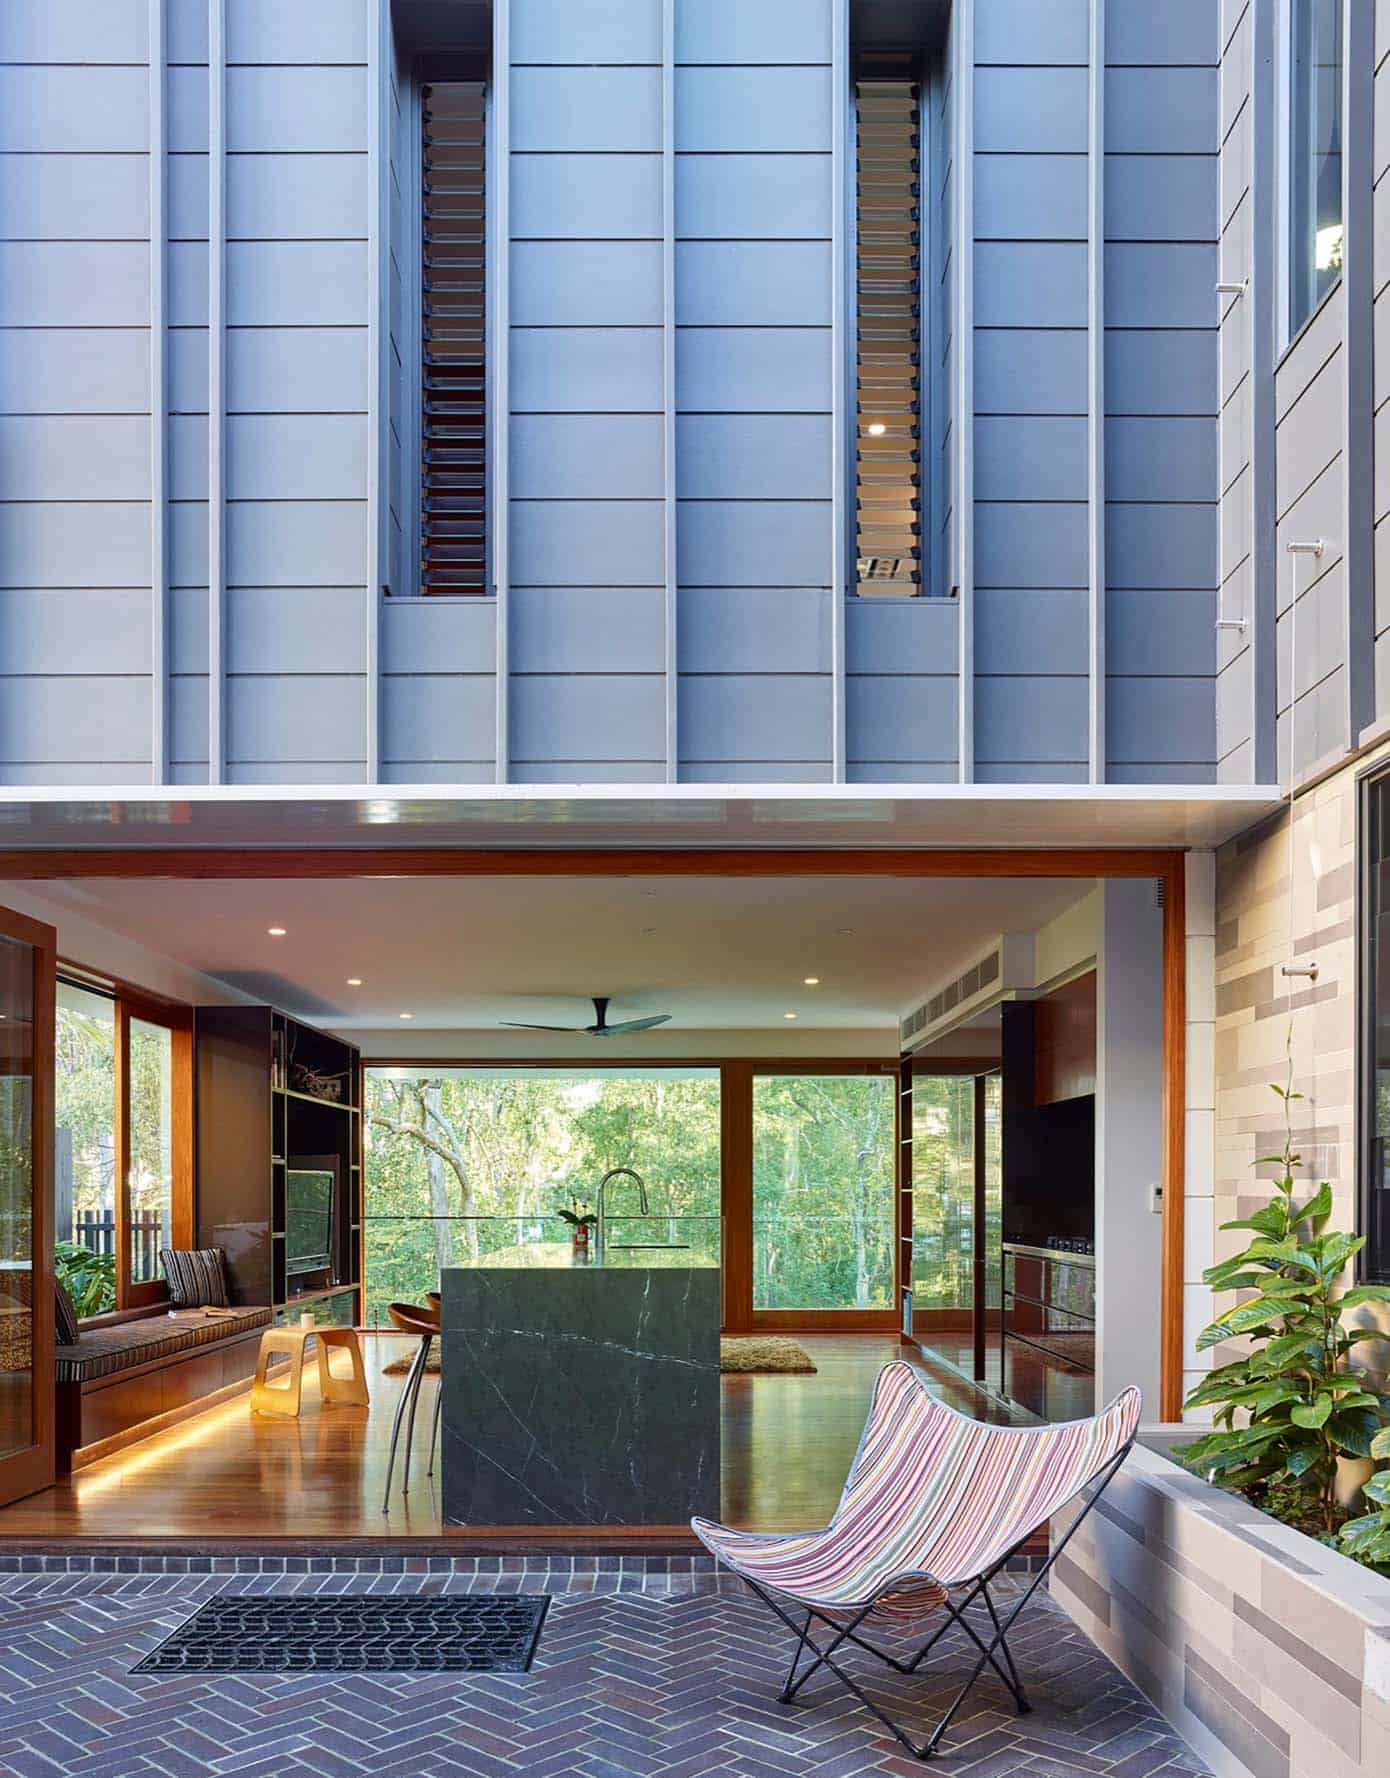 Architecture-Contemporary-Home-ONeill Architecture-05-1 Kindesign